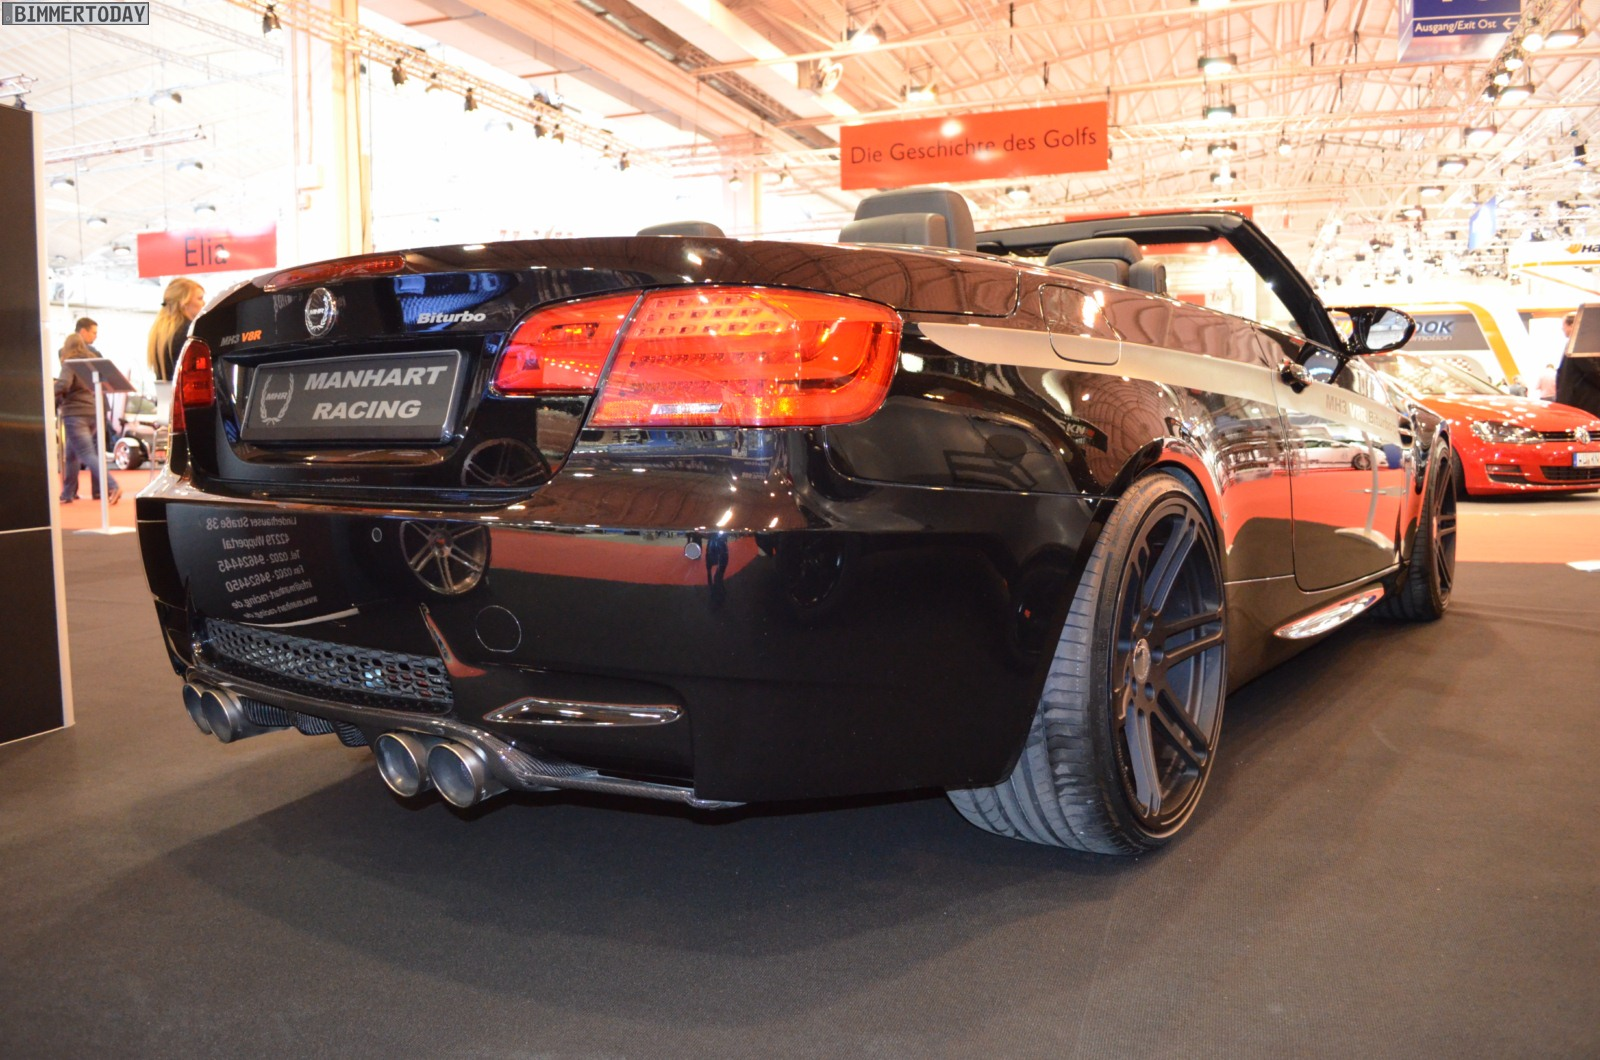 2012 Essen Motor Show Manhart Racing X6 Dirt Edition Mh5 S And R Mh3 V8 Convertible